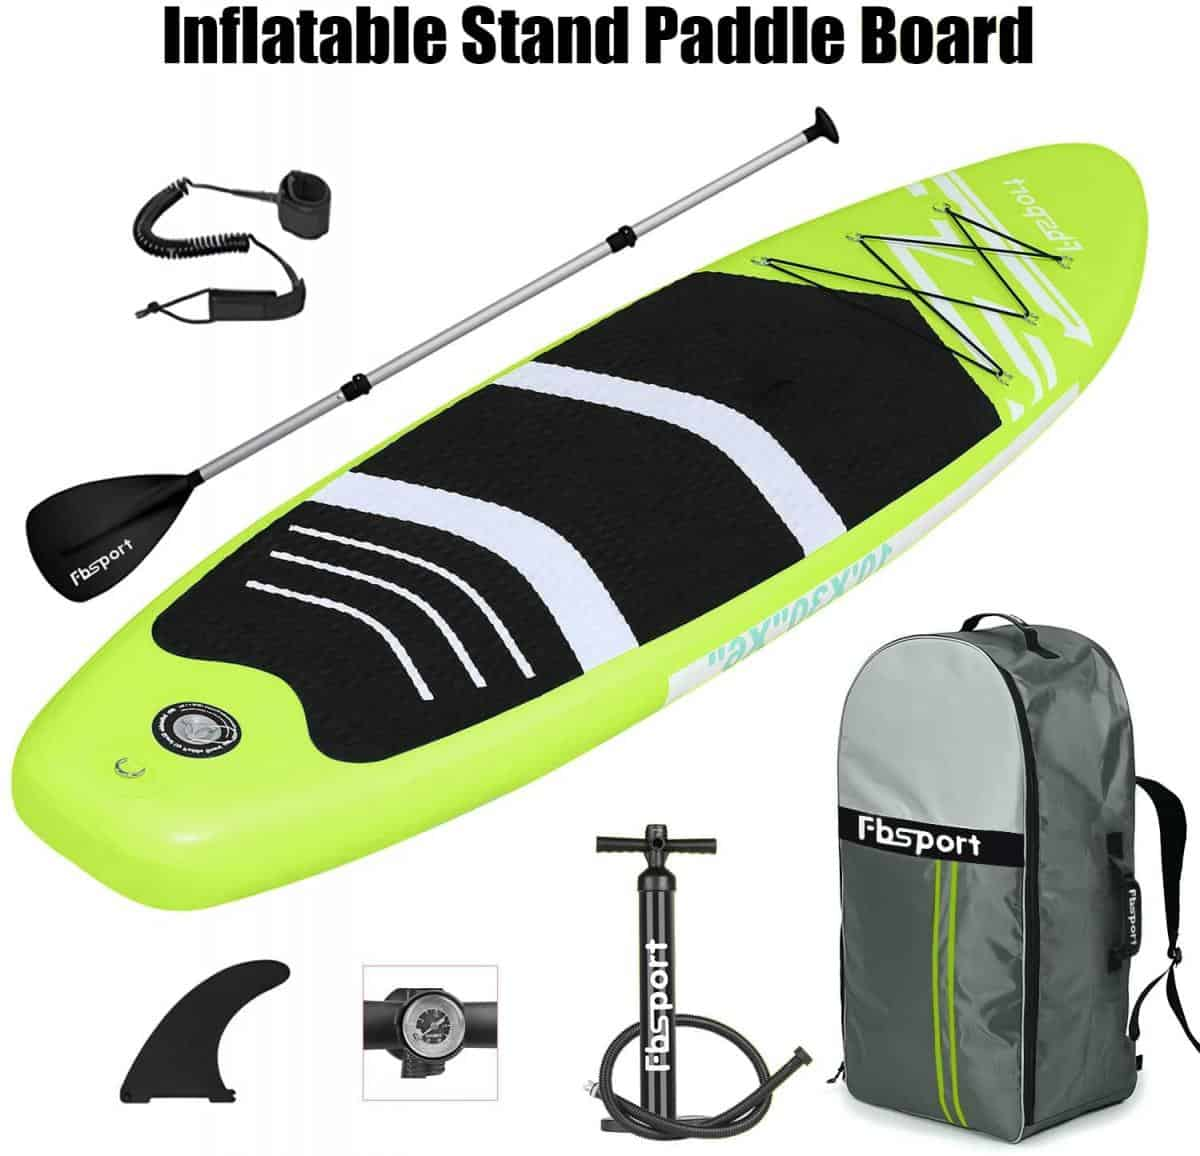 FBSPORT 10'/10.6' Premium Inflatable Stand Up Paddle Board, Yoga Baord With Durable SUP Accessories & Carry Bag | Wide Stance, Surf Control, Non-Slip Deck, Leash, Paddle And Pump For Youth & Adult Apple Green Review Image 3